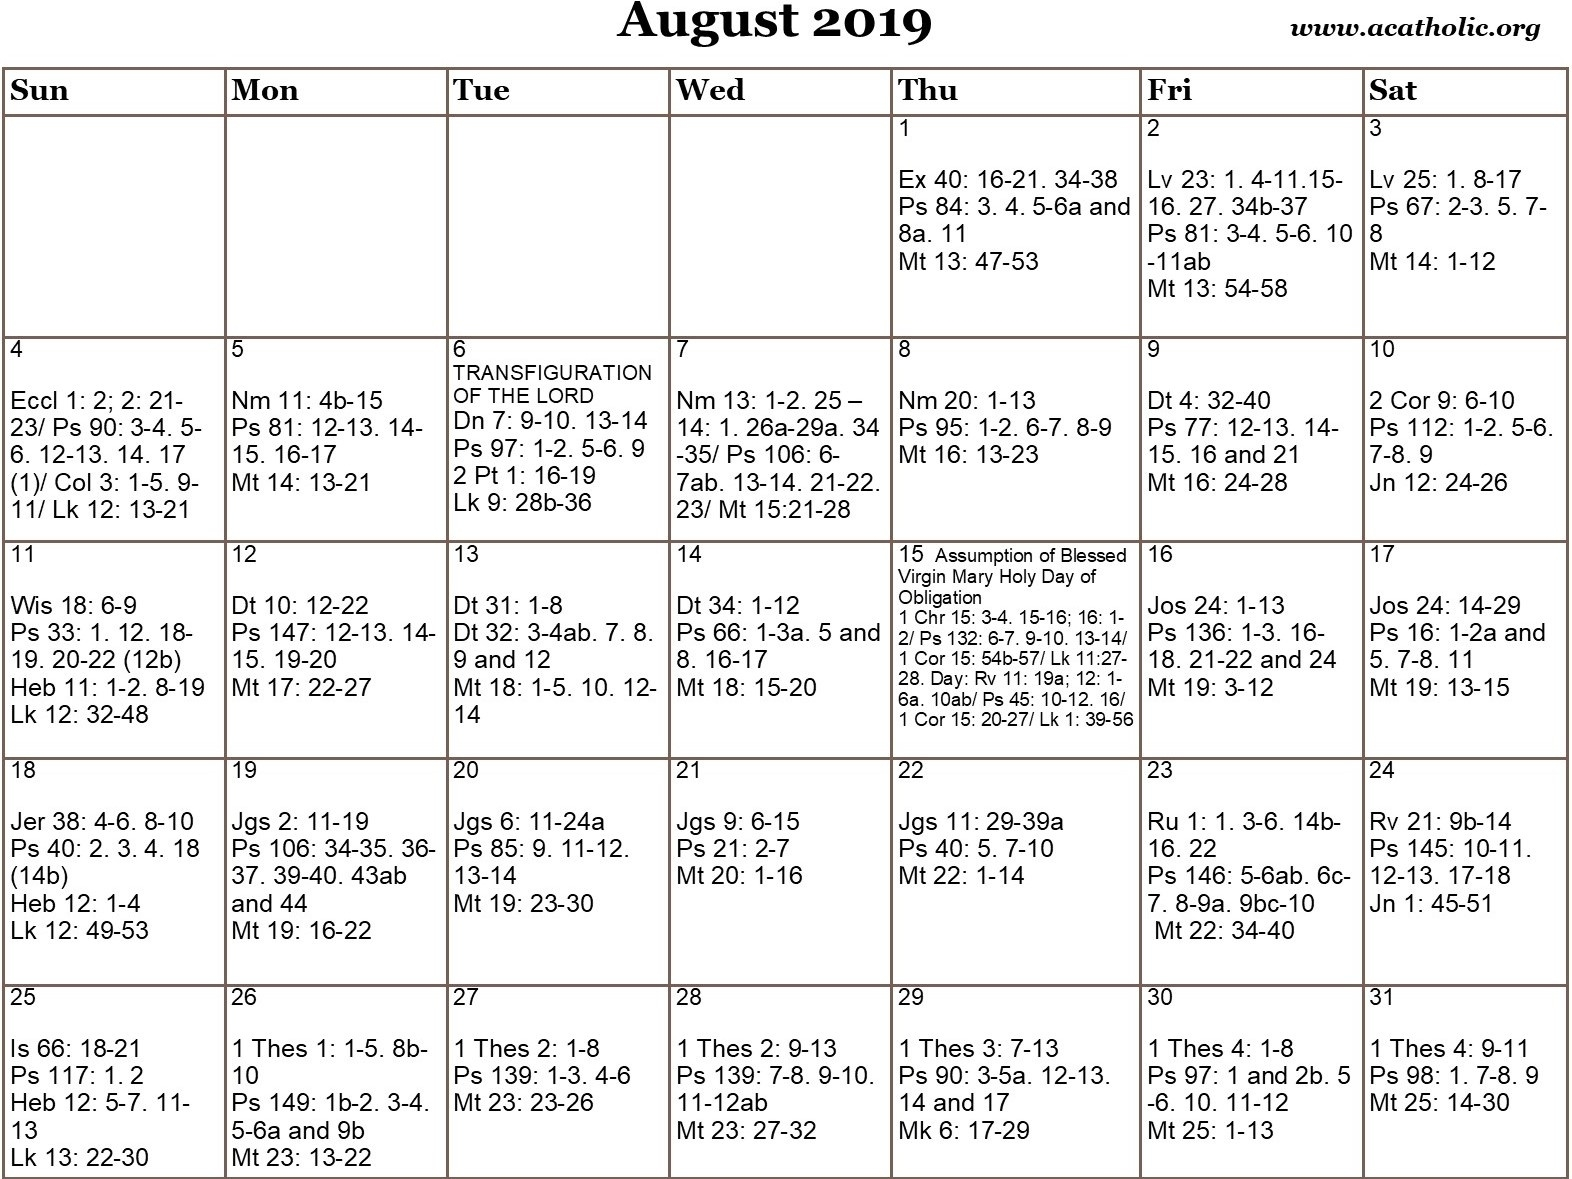 Tamil Calendar 2019 July August - Monthly Calendar Of The Catholic_School Calendar Kerala 2020-19